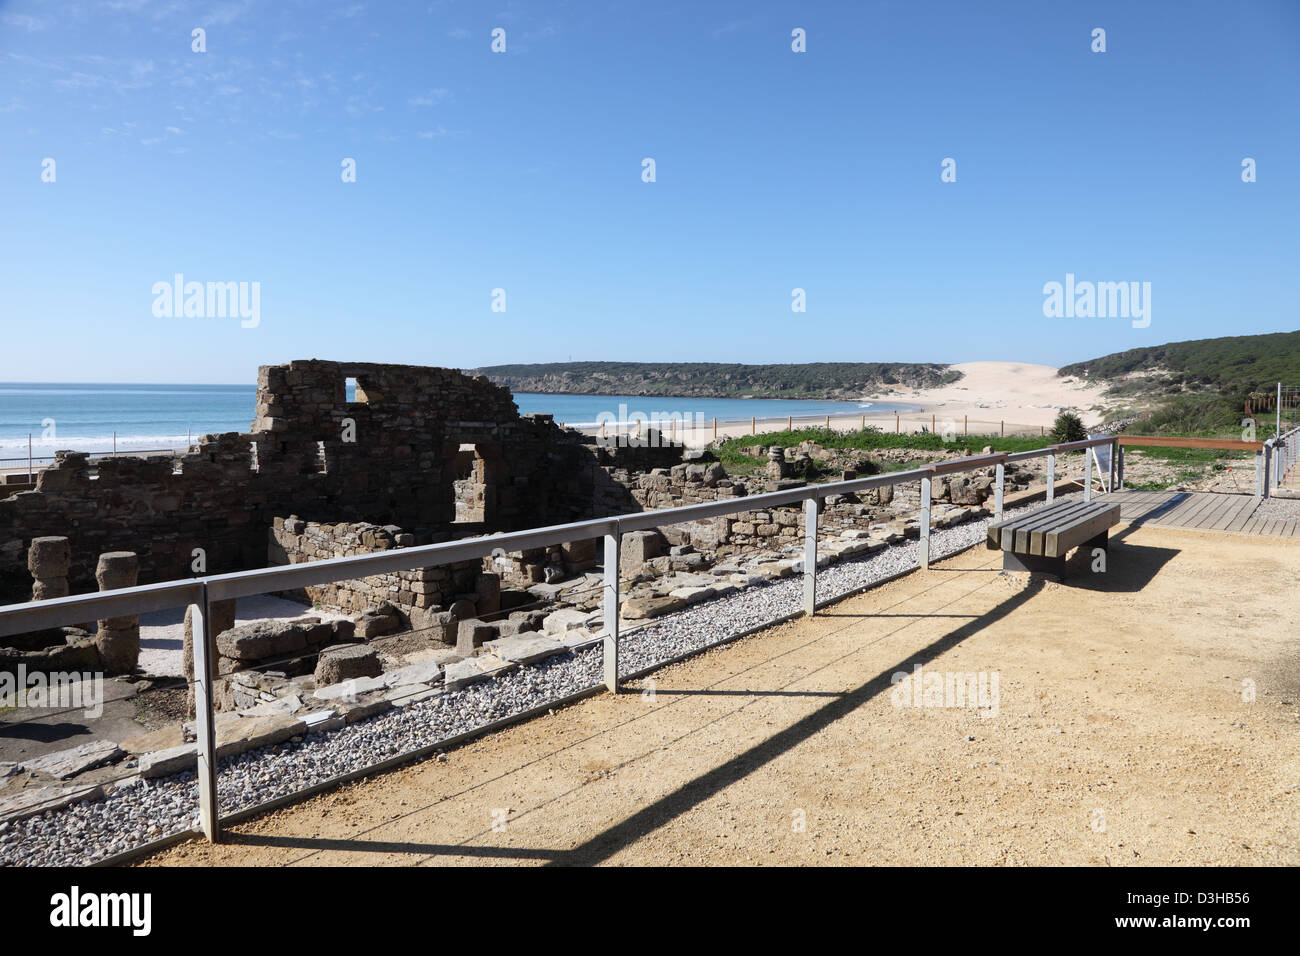 Ruins of the roman town Baleo Claudia in Andalusia, southern Spain Stock Photo